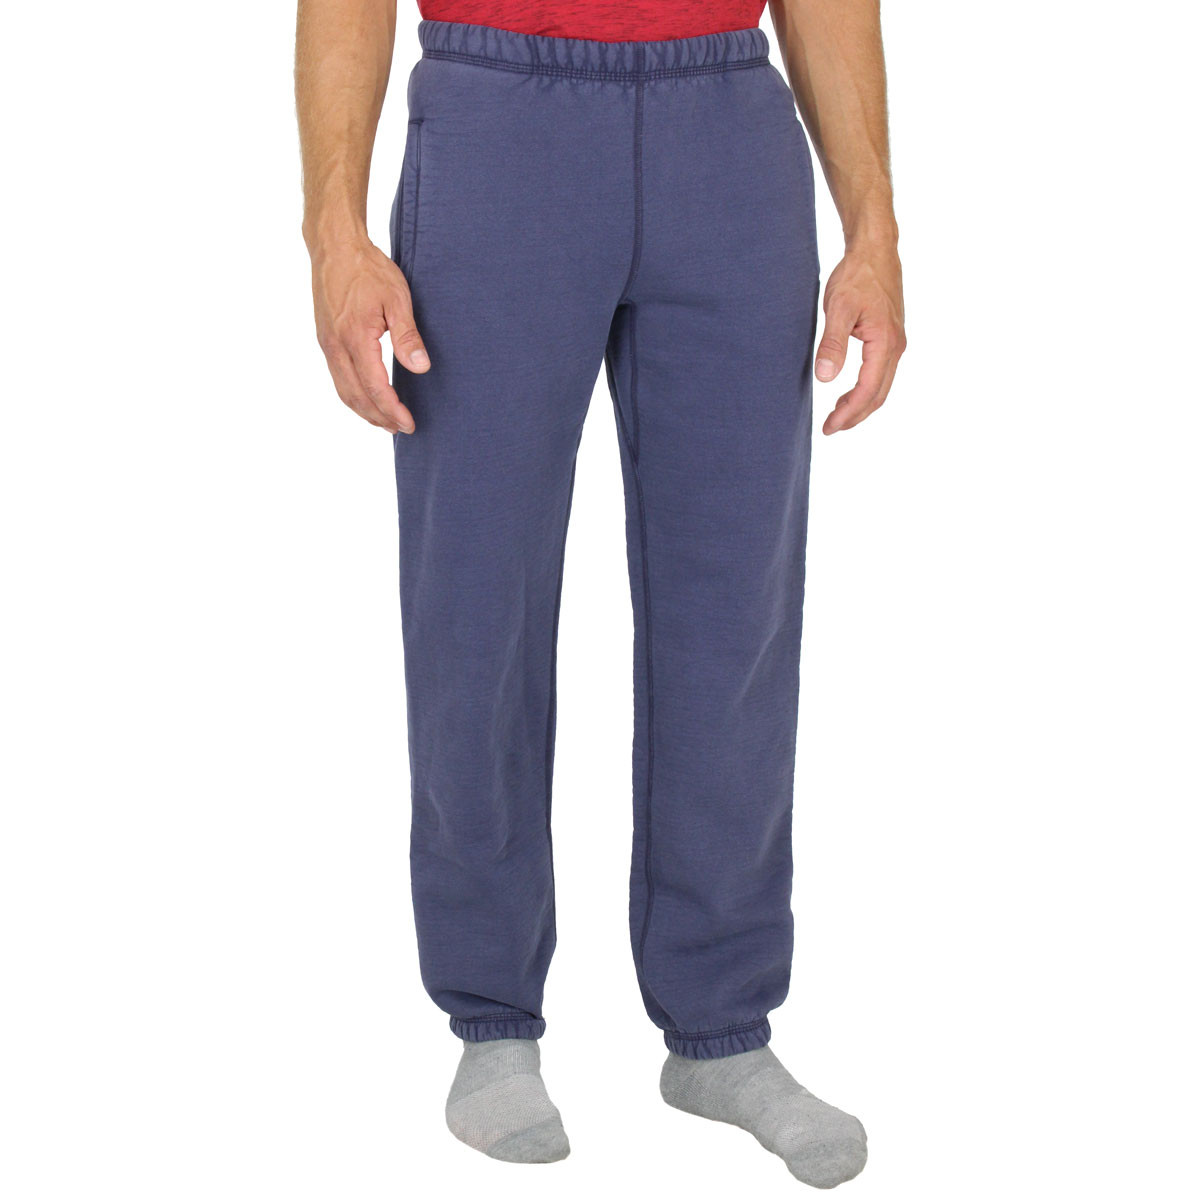 2063750a96f7 THICK 100% All-Cotton CUFFED SWEATPANTS for MEN by CottonMill